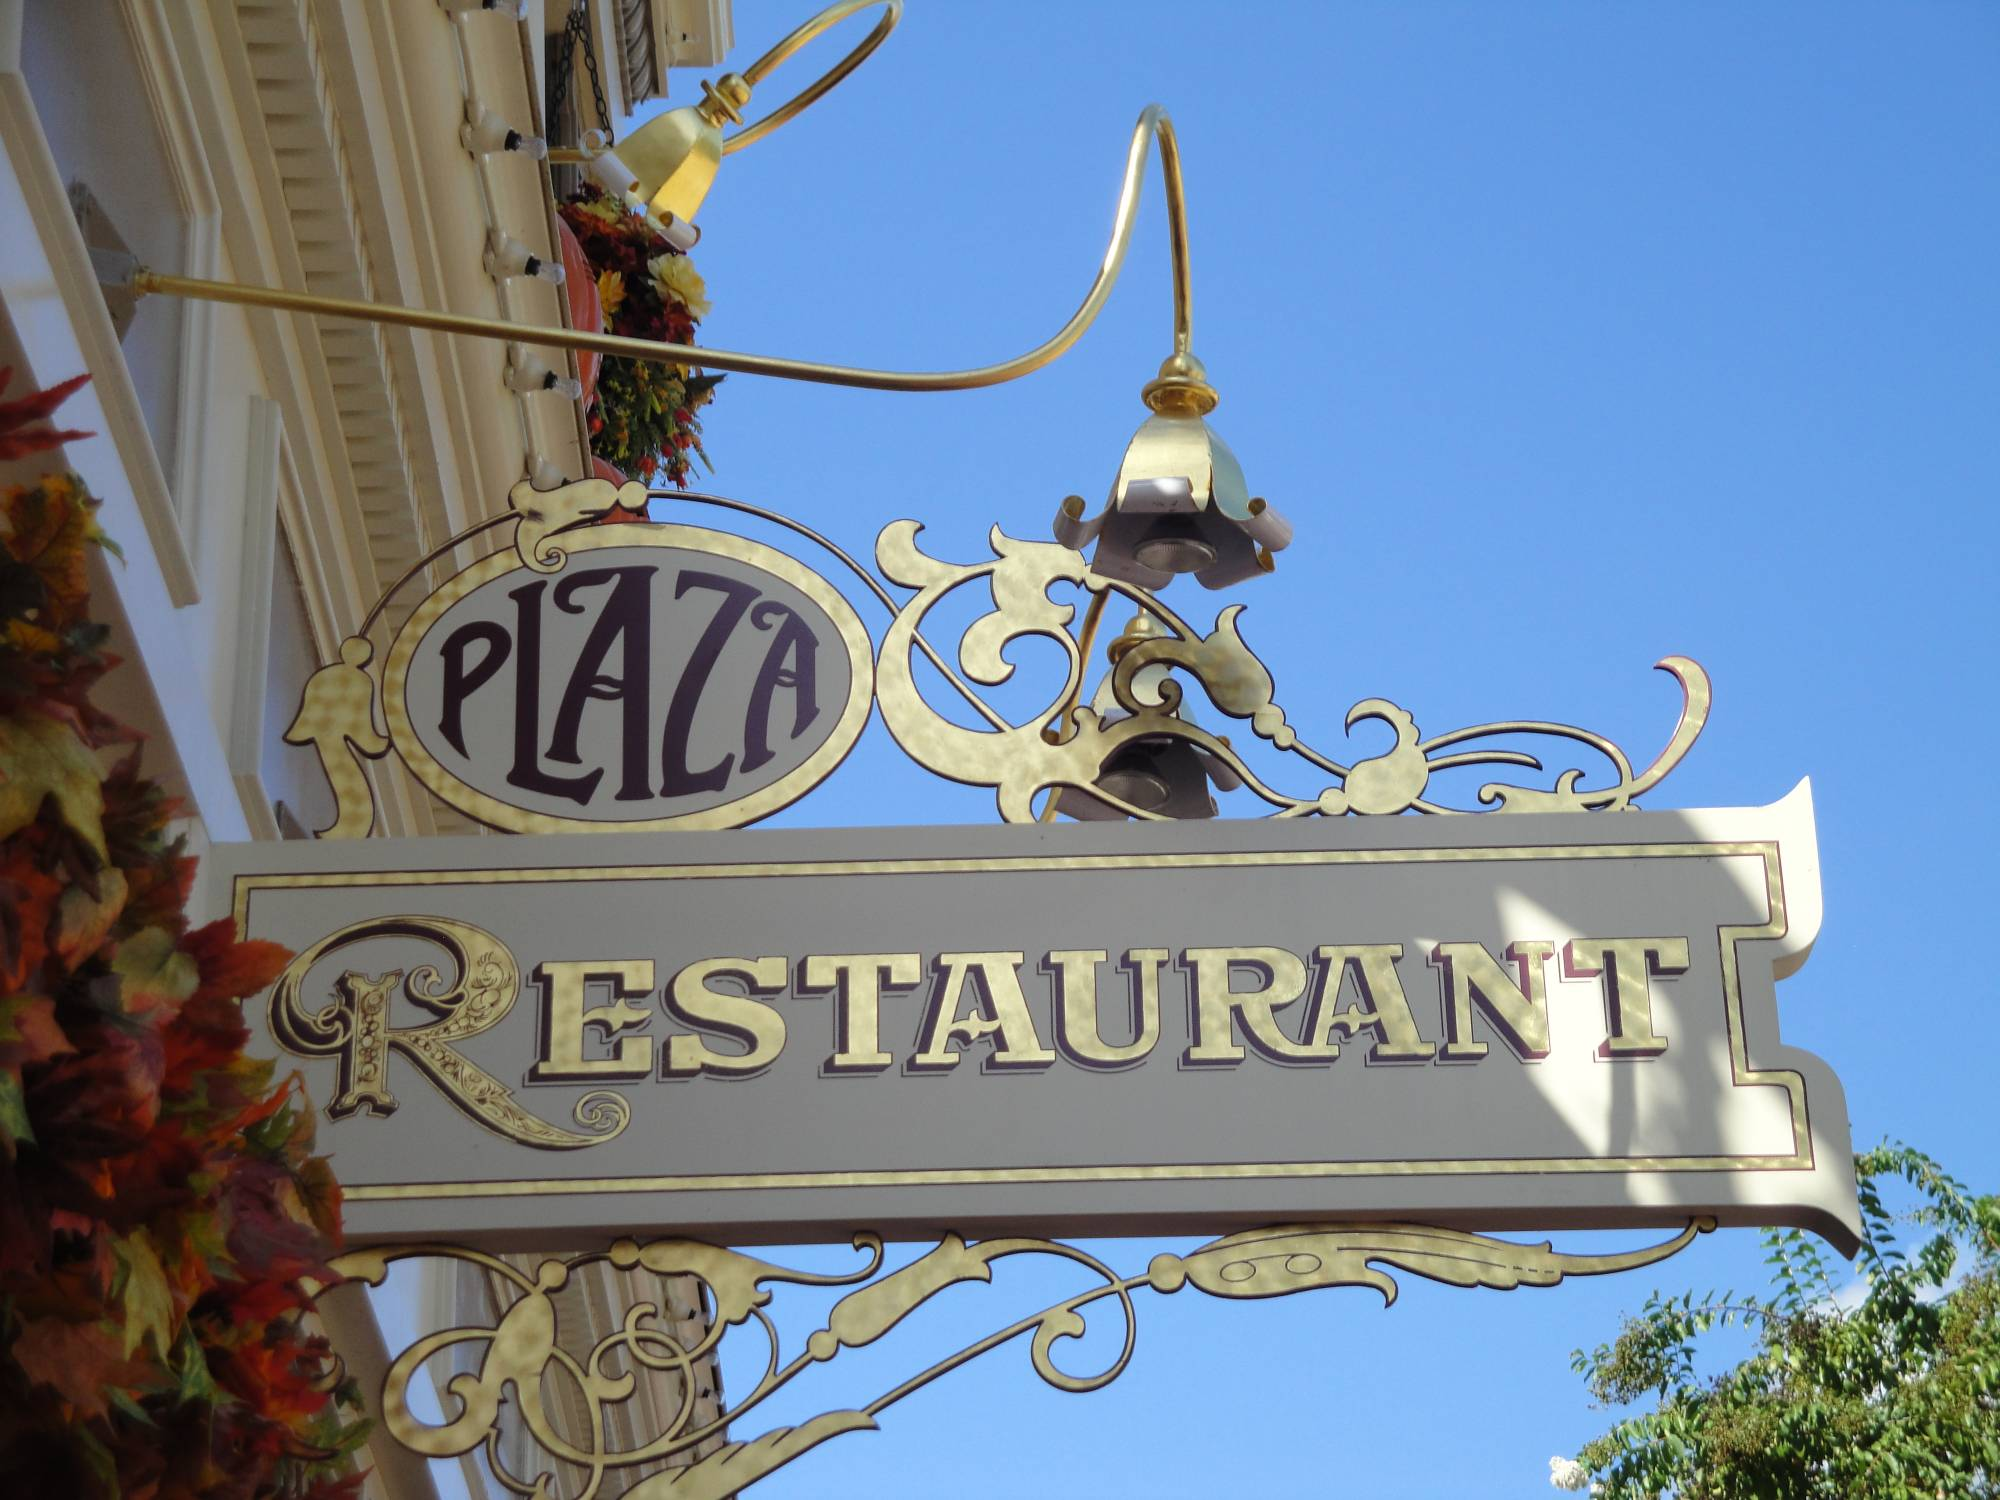 Enjoy a peaceful meal at the Plaza Restaurant in the Magic Kingdom |PassPorter.com